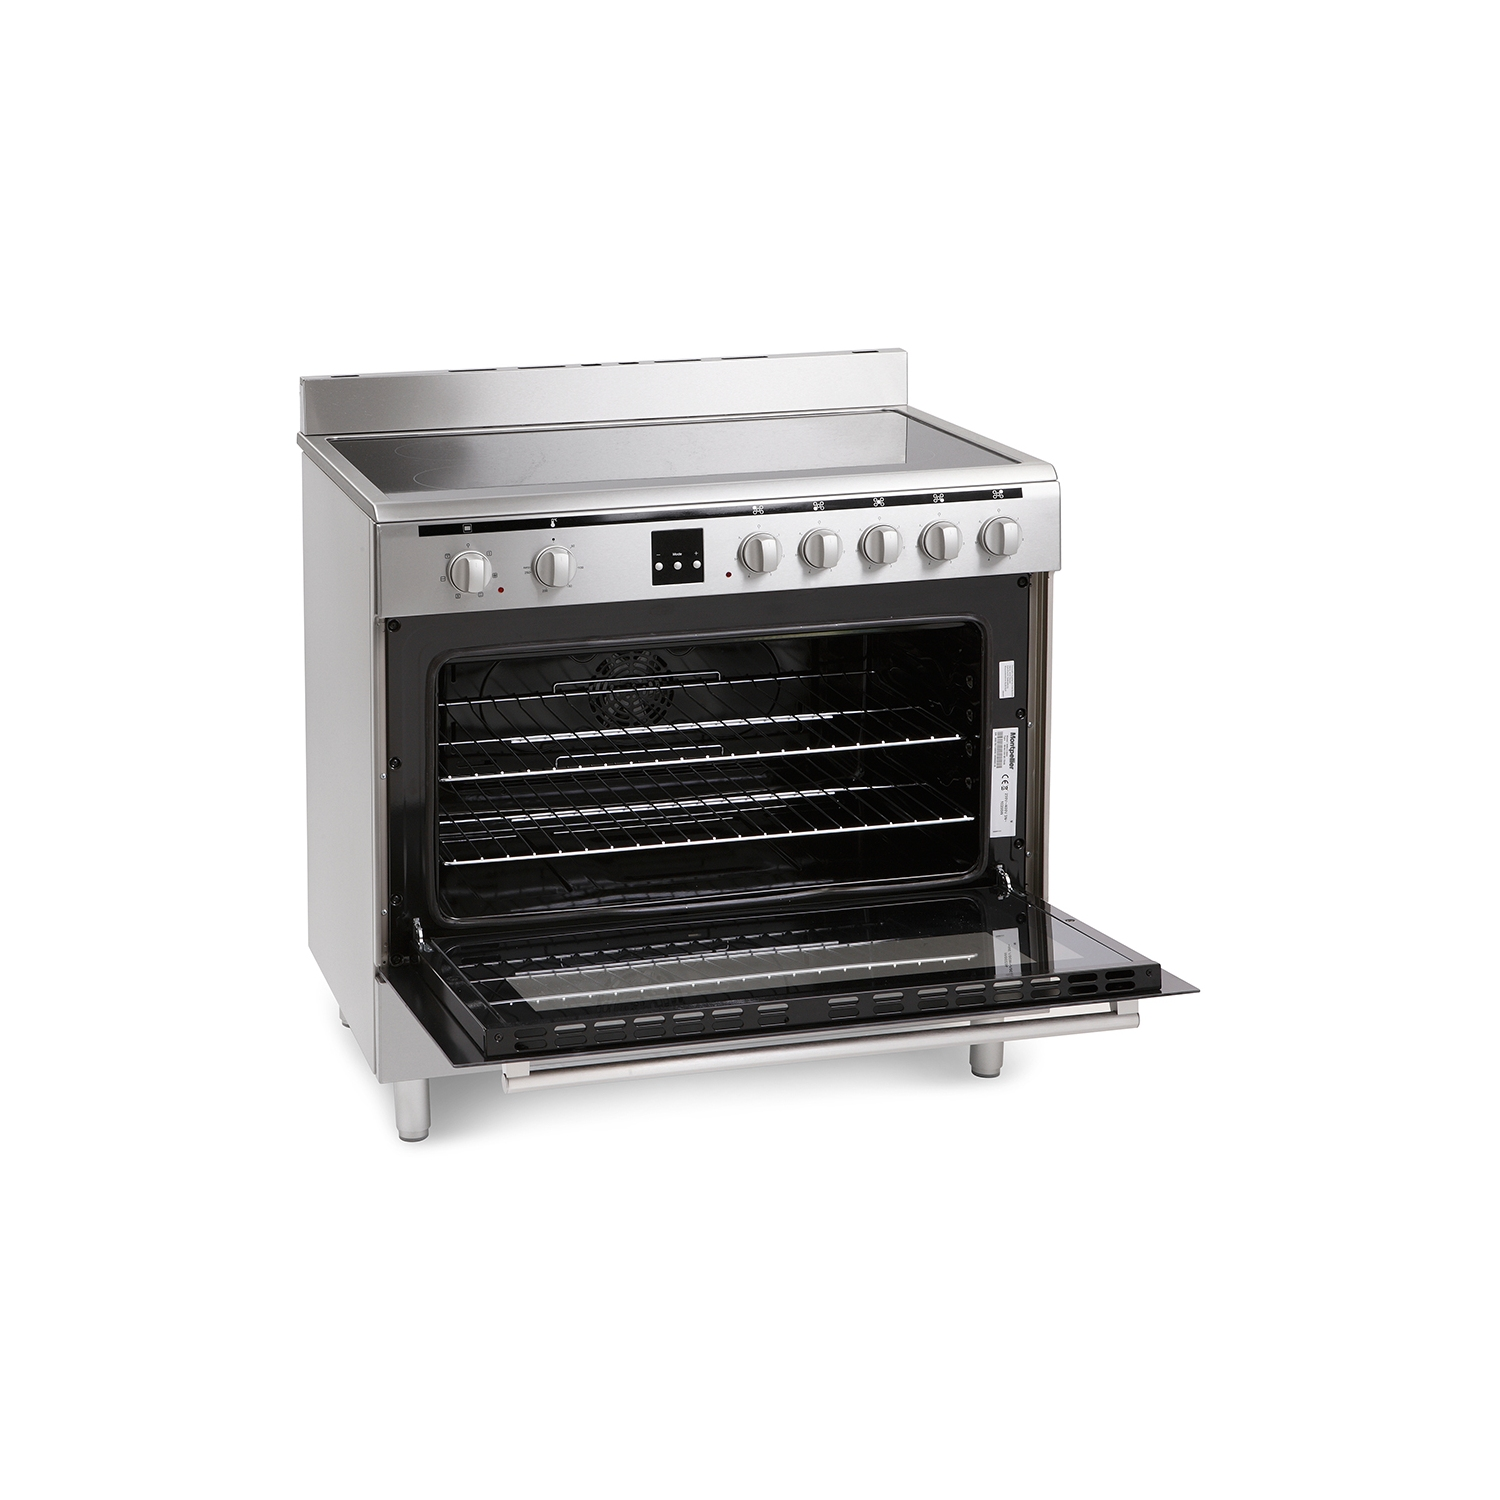 Montpellier MR90CEMX Electric Range Cooker - 1